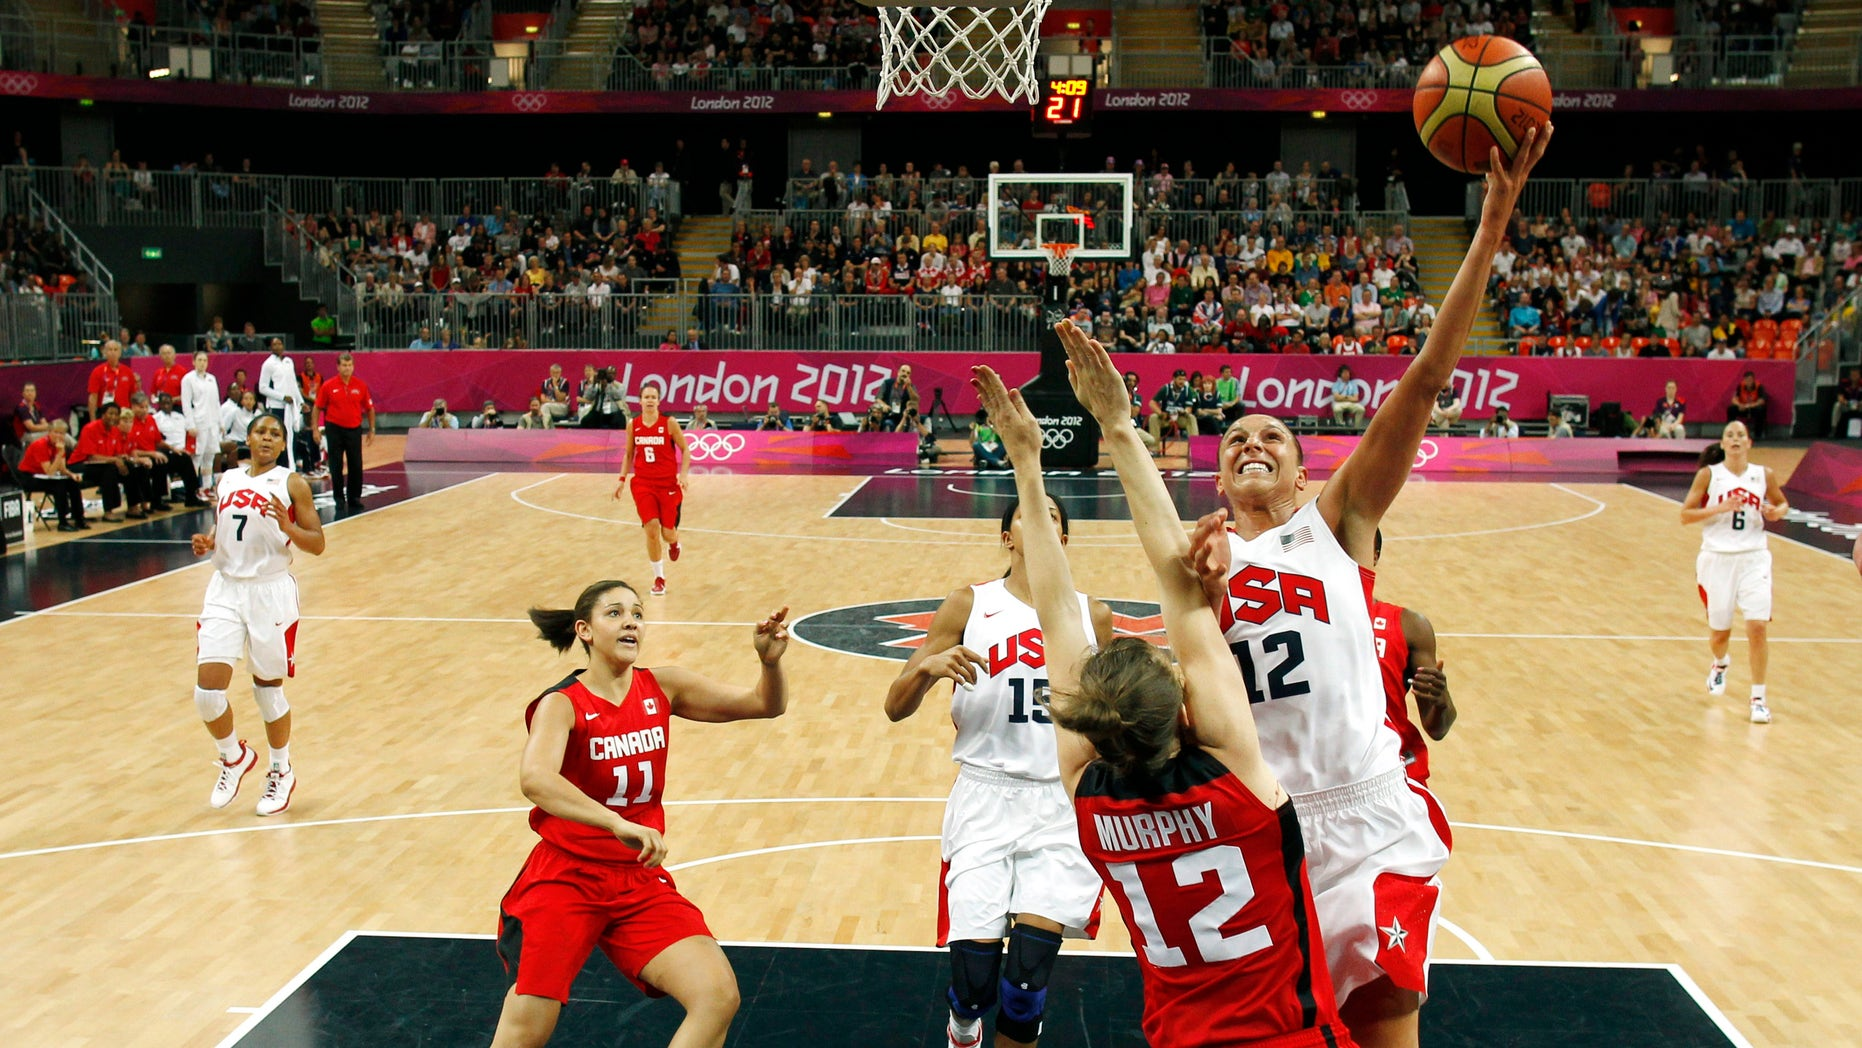 Diana Taurasi (12) of the U.S. shoots over Canada's Lizanne Murphy during a women's quarterfinal basketball match at the 2012 Summer Olympics on Tuesday, Aug. 7, 2012, in London. (AP Photo/Sergio Perez, Pool)